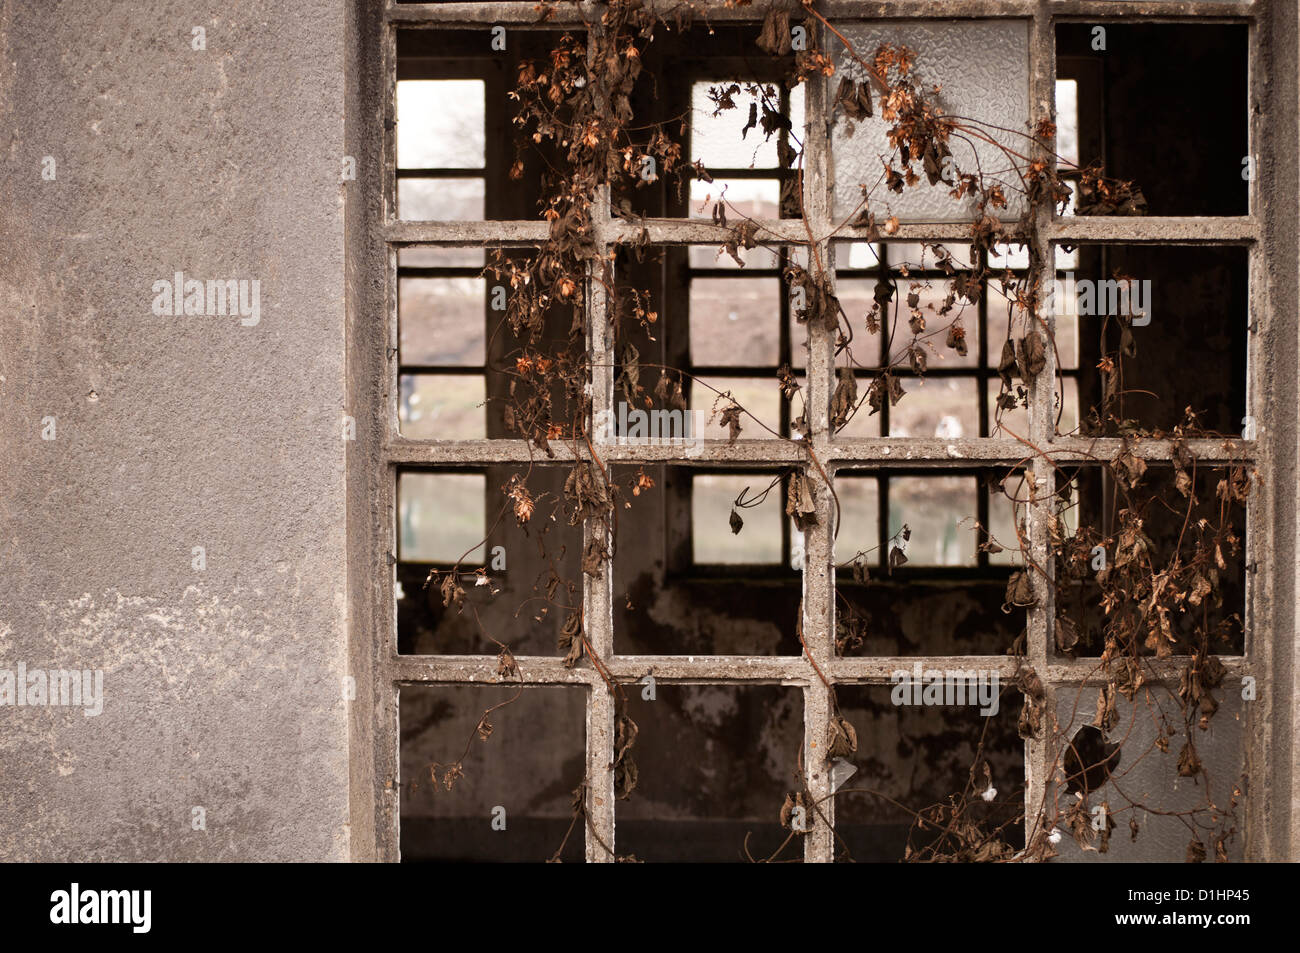 Abandoned house - Stock Image